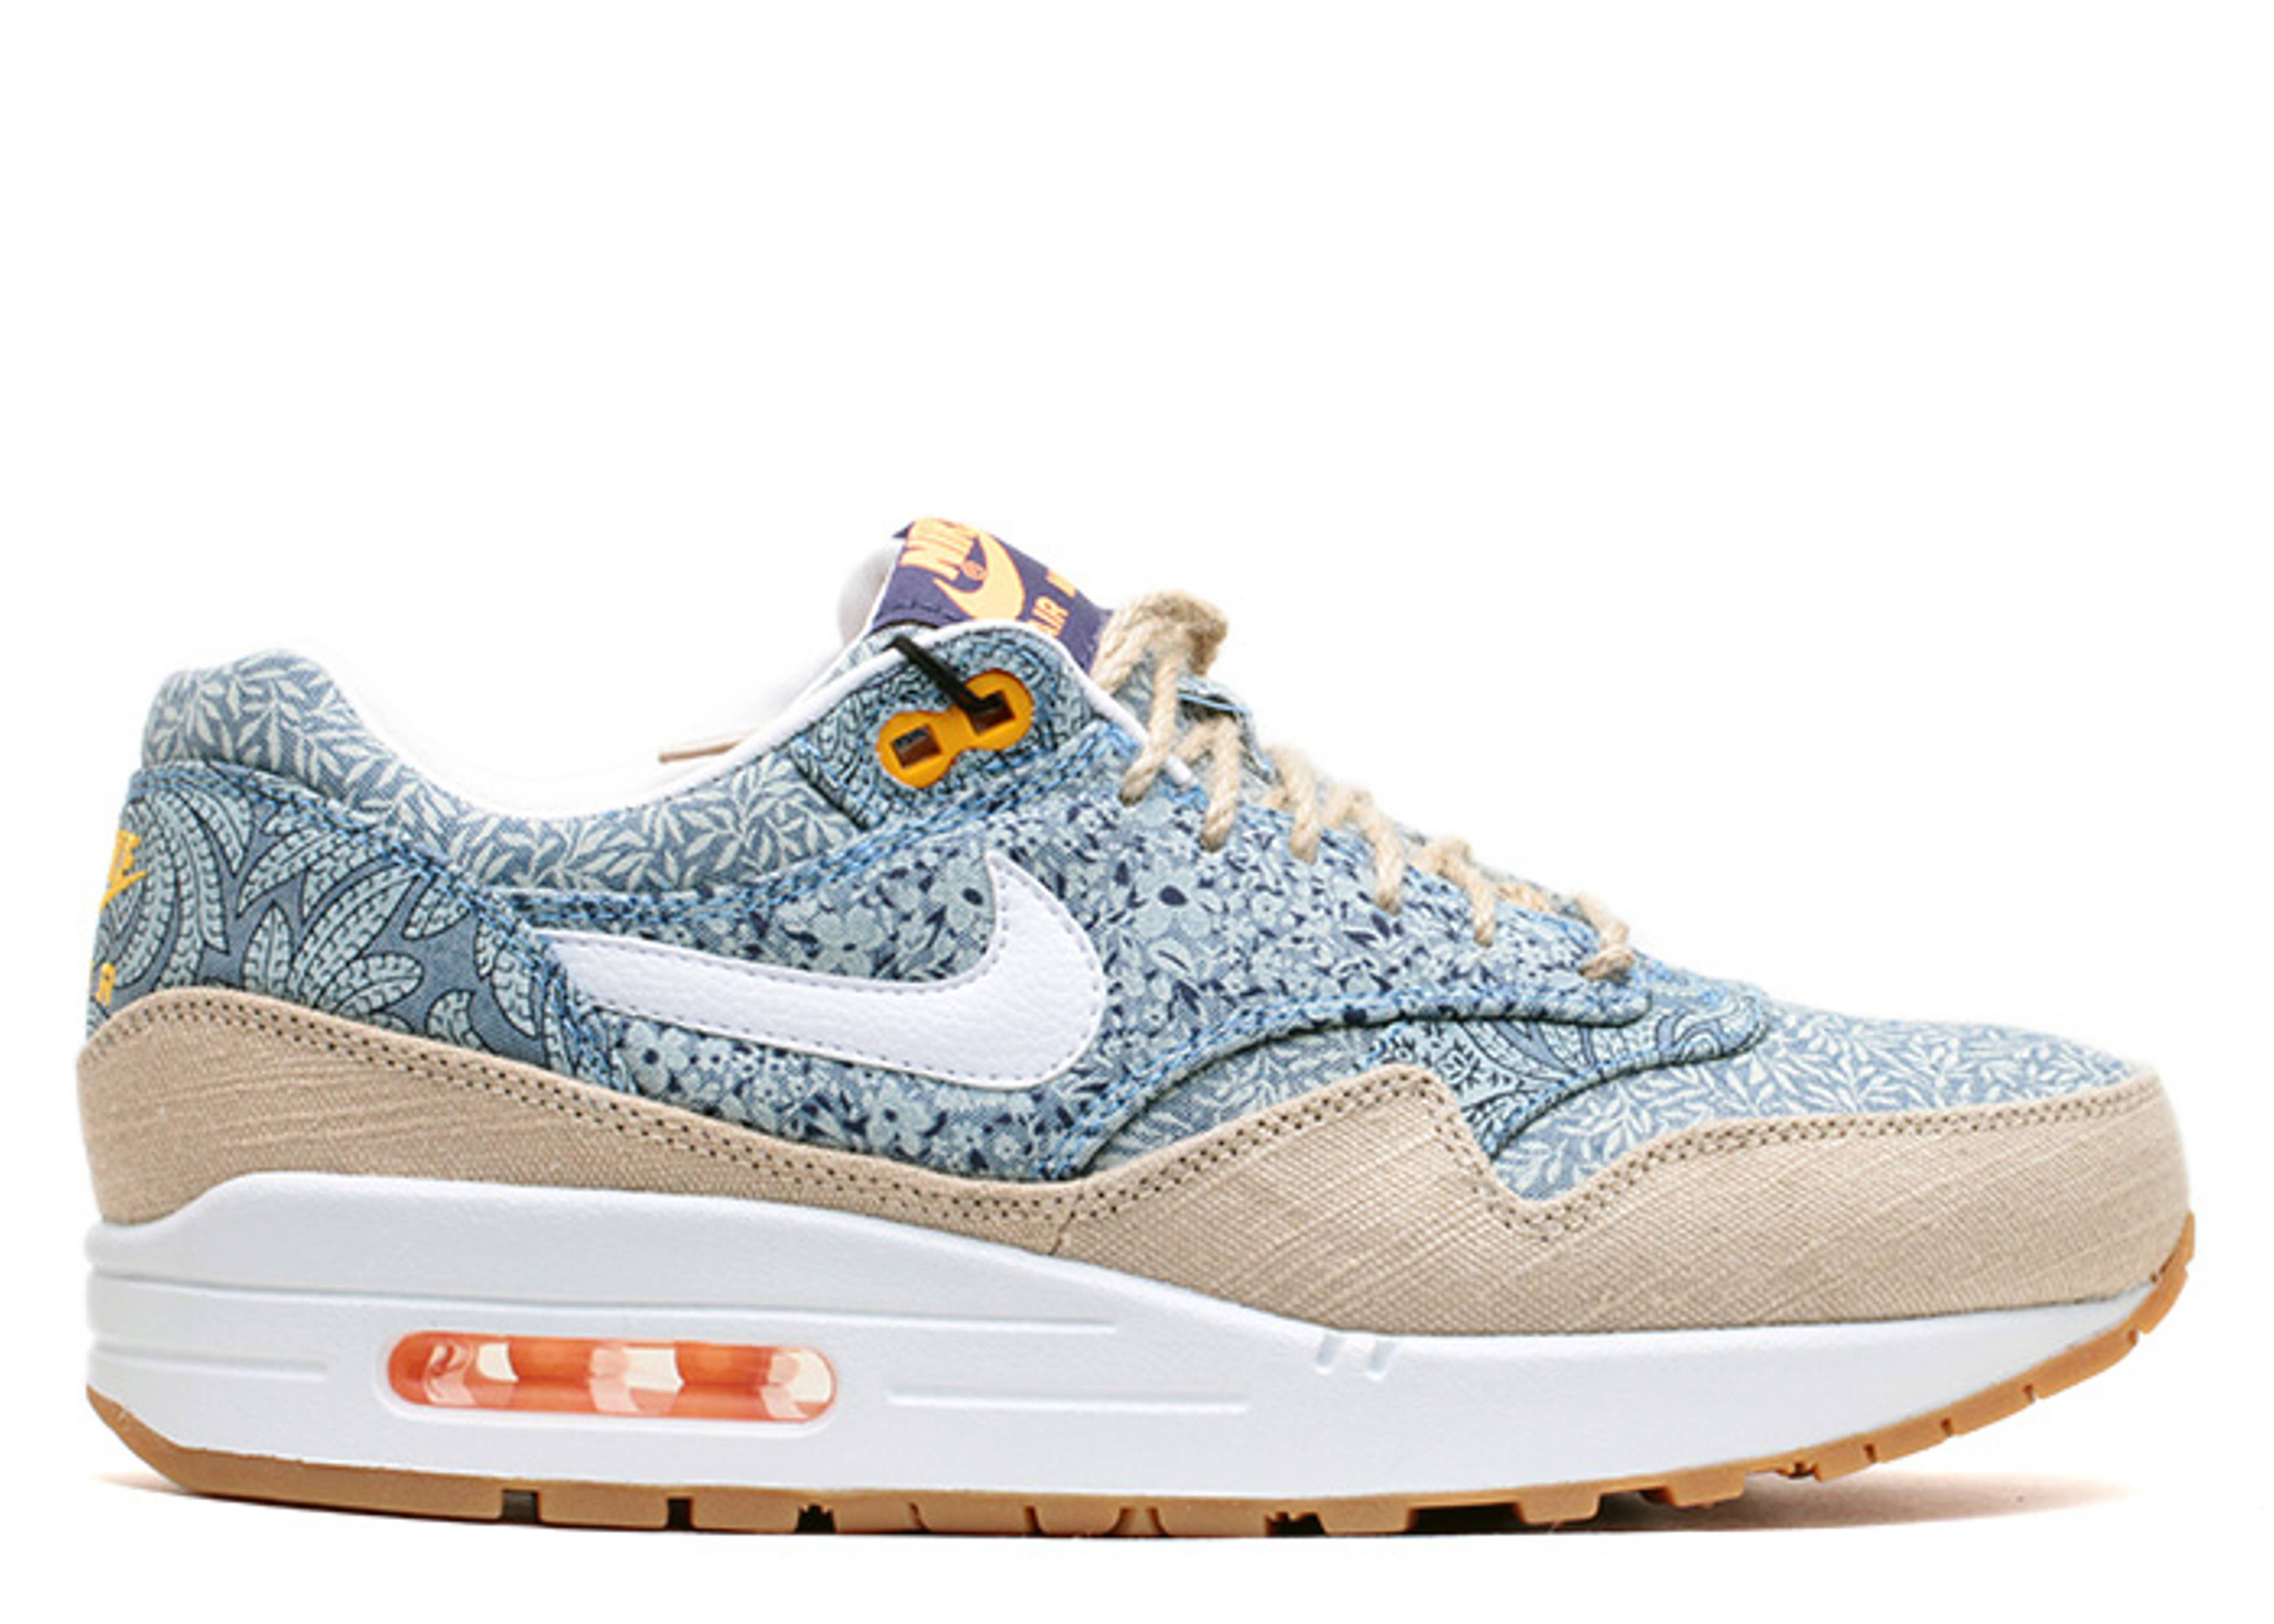 w's air max 1 lib qs